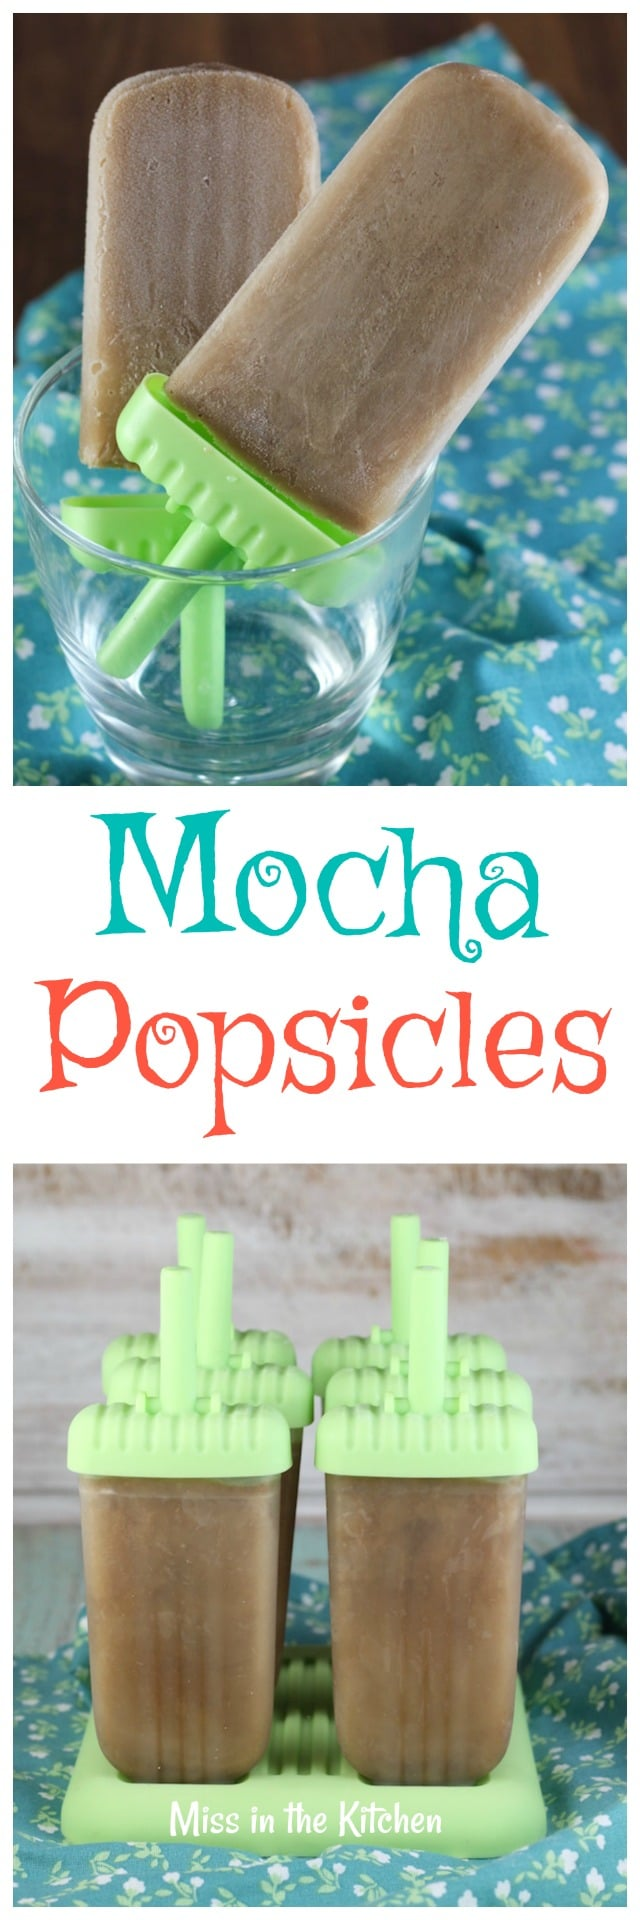 Mocha Popsicles Recipe ~ Easy Summer Treat made with just 4 ingredients ~ MissintheKitchen.com #Sponsored by Nielsen- Massey Vanillas